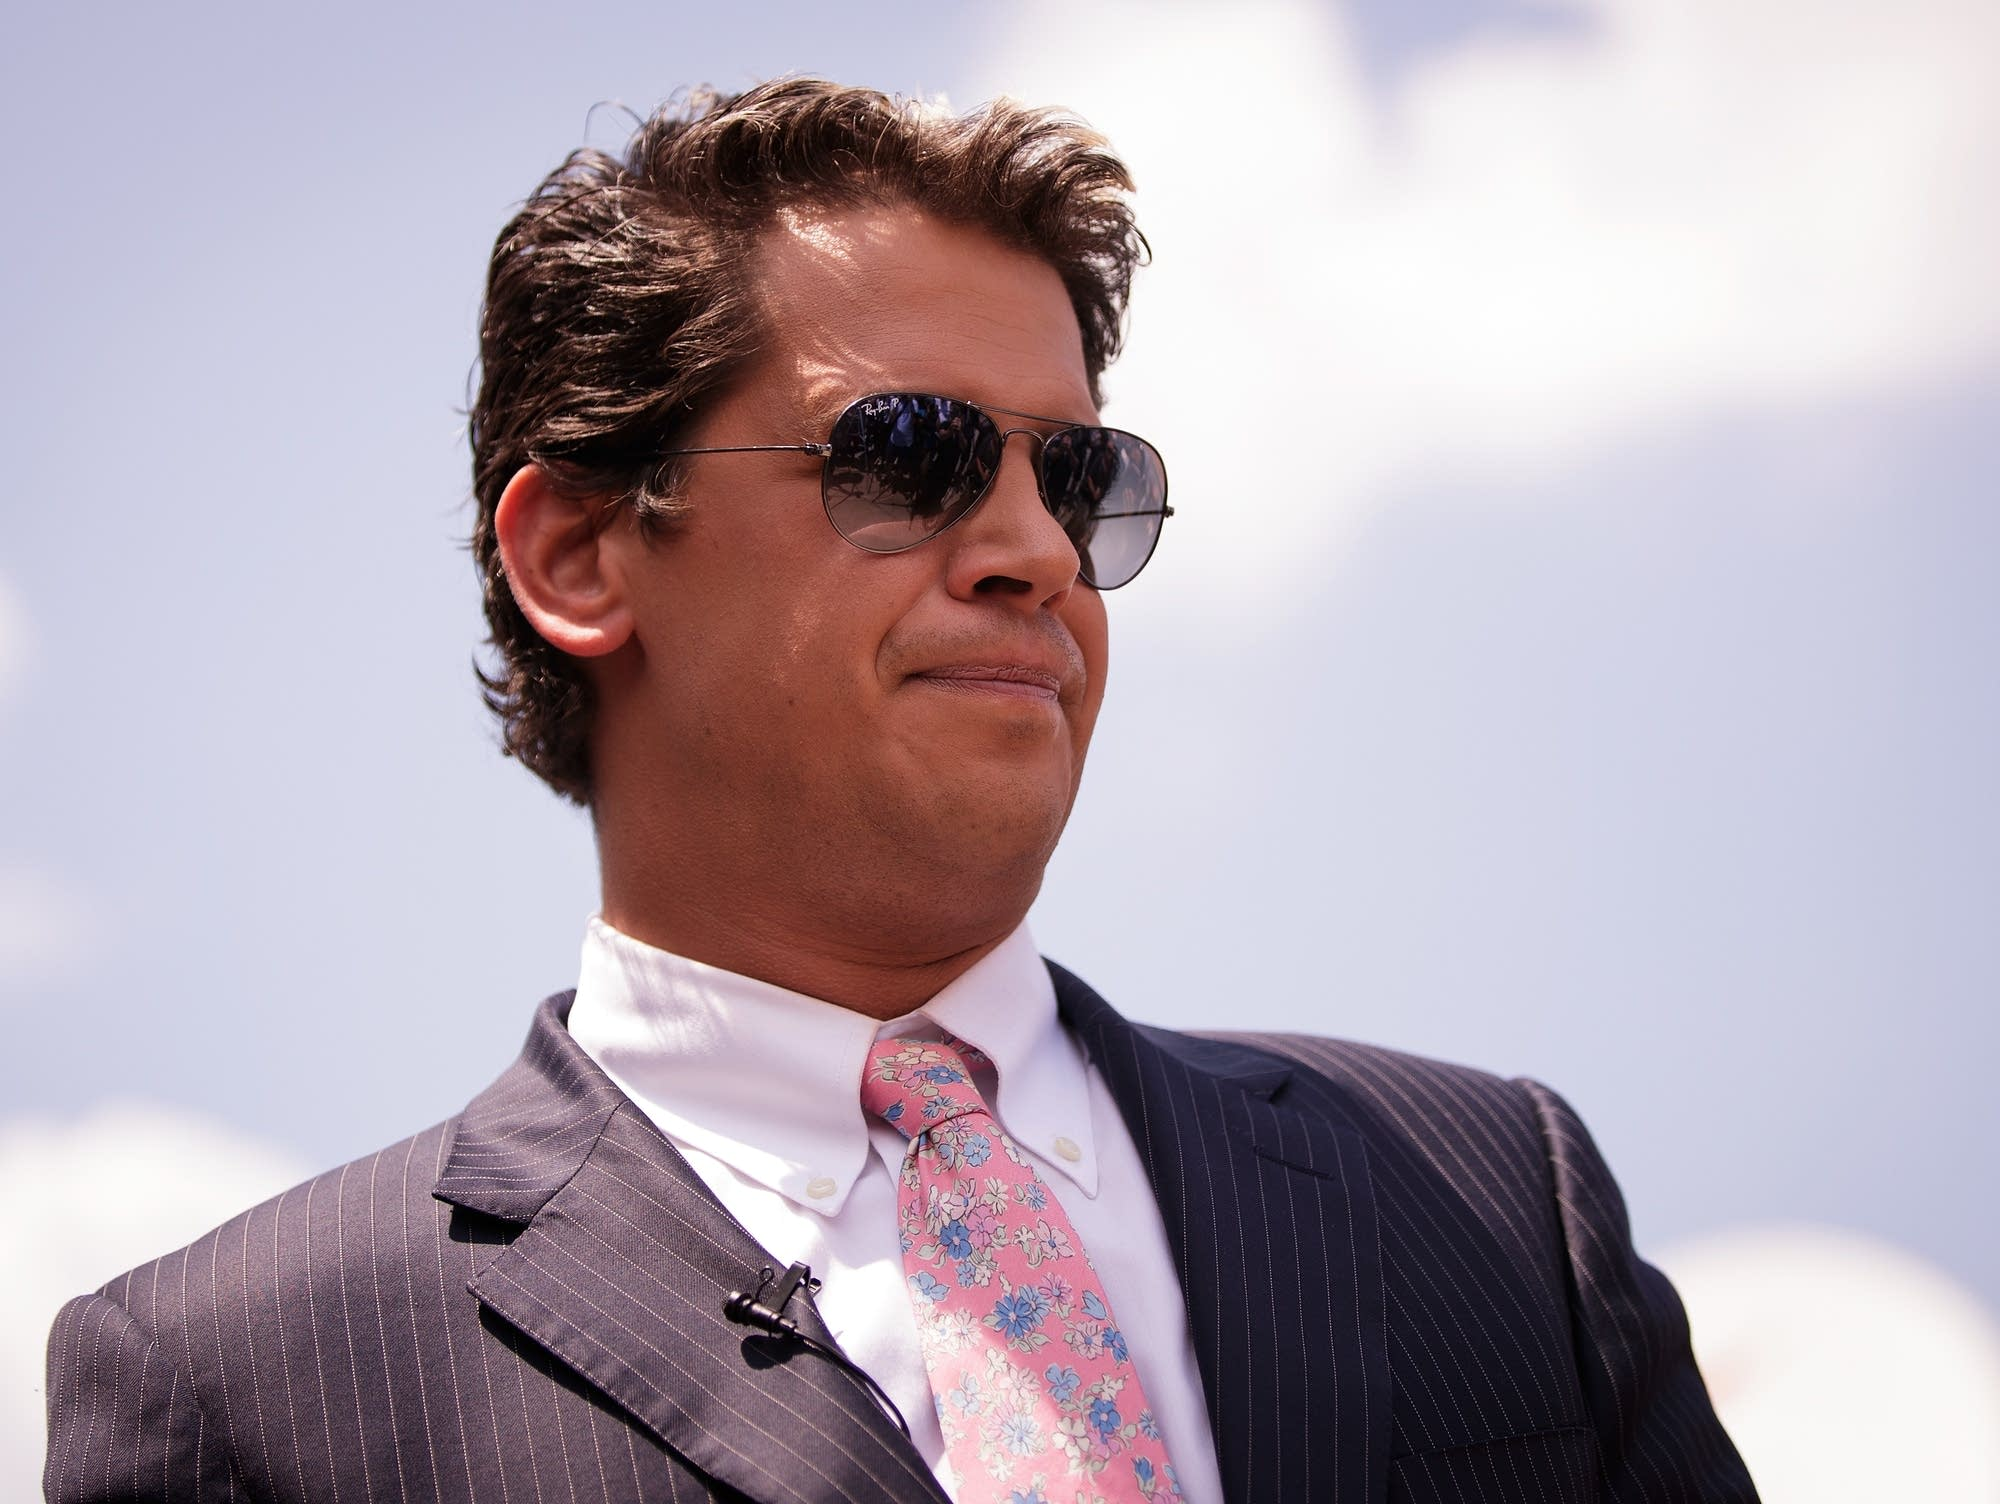 Milo Yiannopoulos, a conservative columnis